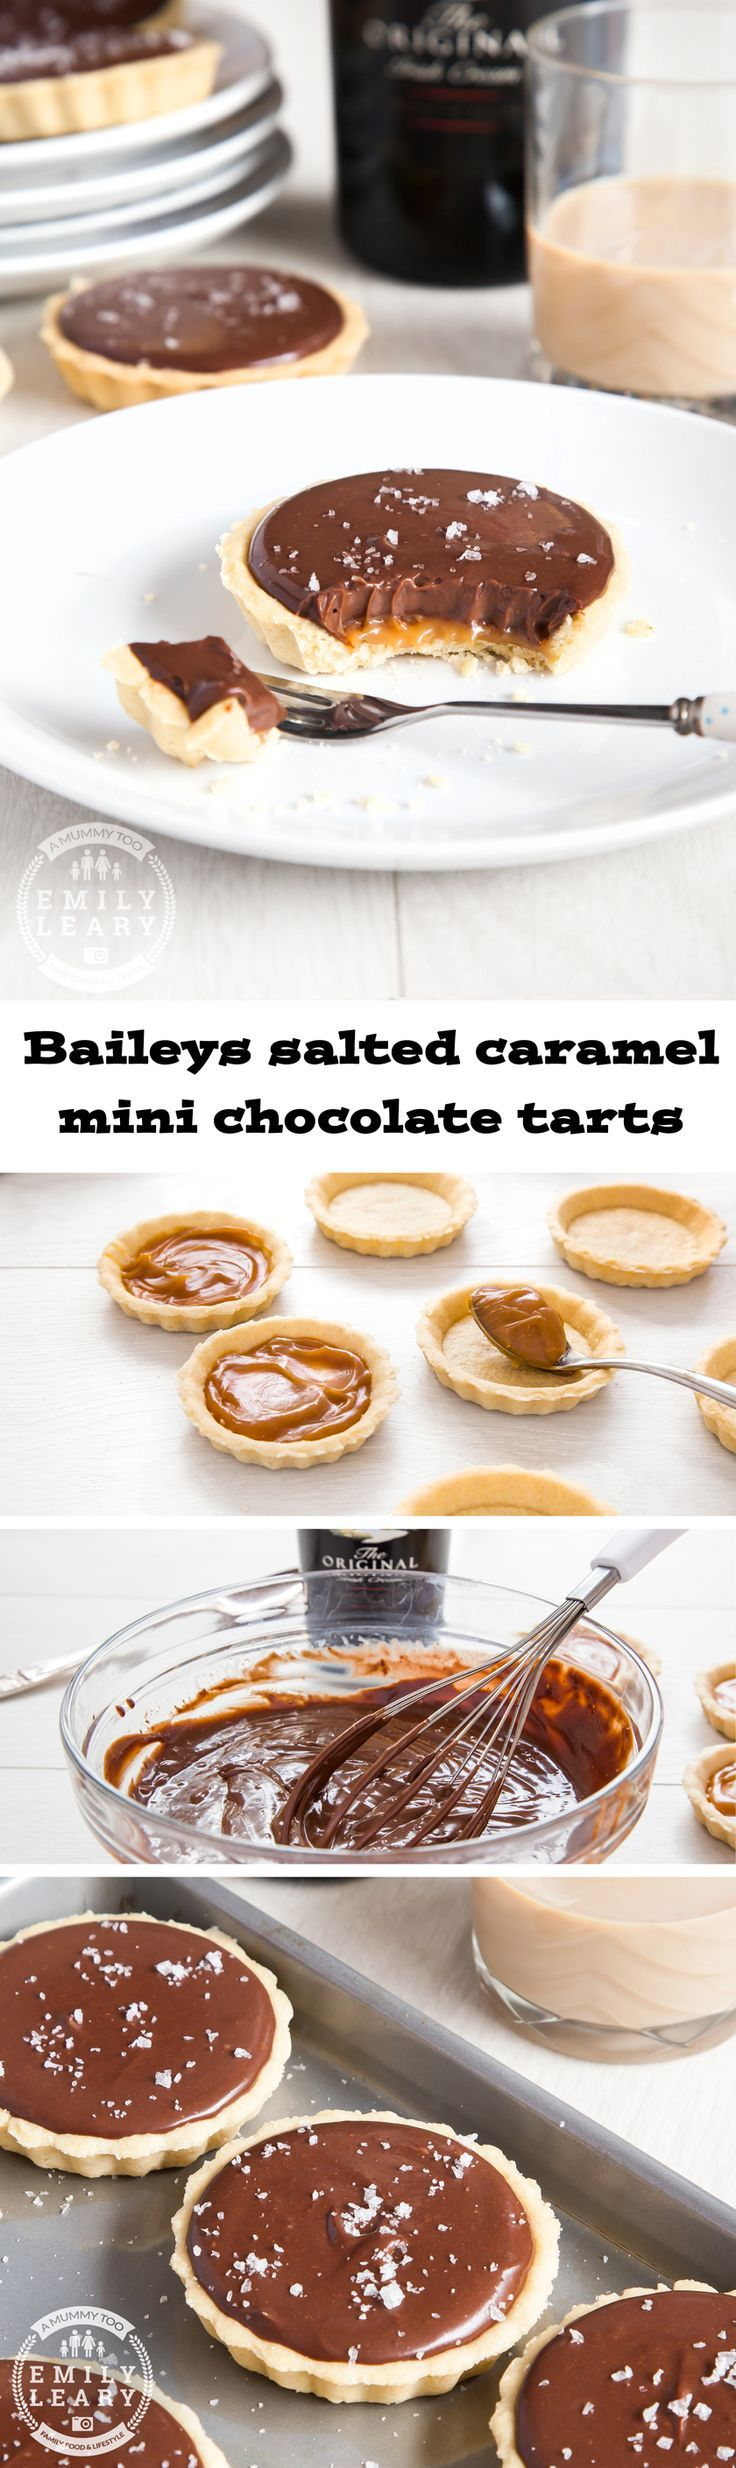 Baileys salted caramel mini chocolate tarts. Stunningly delicious. Sweet shortcrust pastry, a layer of salted caramel, topped with creamy Baileys and chocolate ganache, and finished with a sprinkle of s